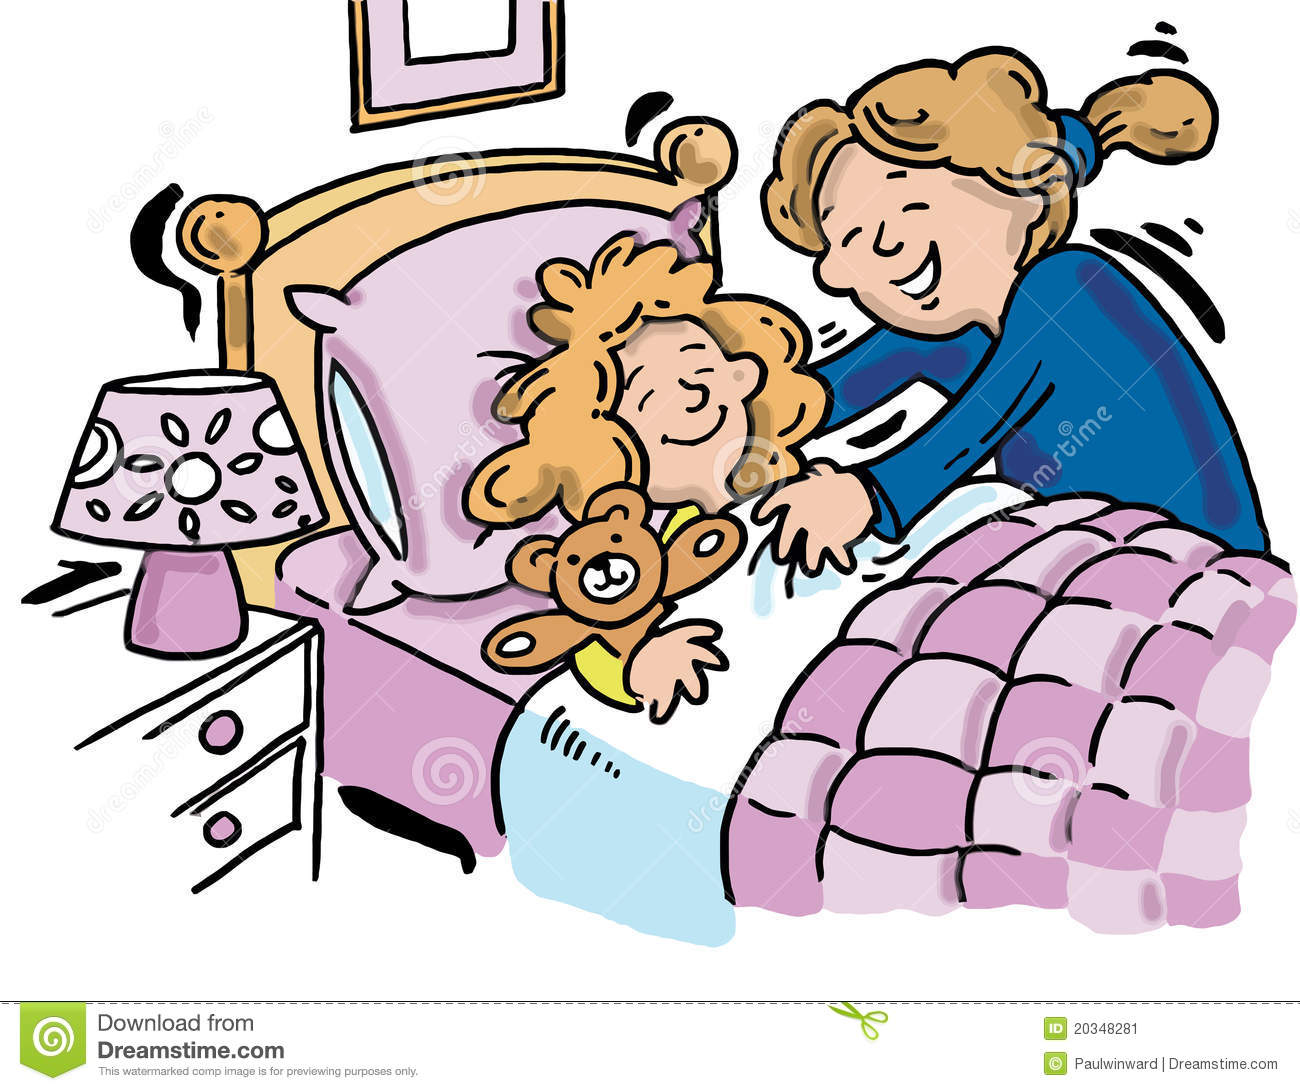 Cuddle clipart bedtime Bedtime Clipart Bedtime Tiny Clipart